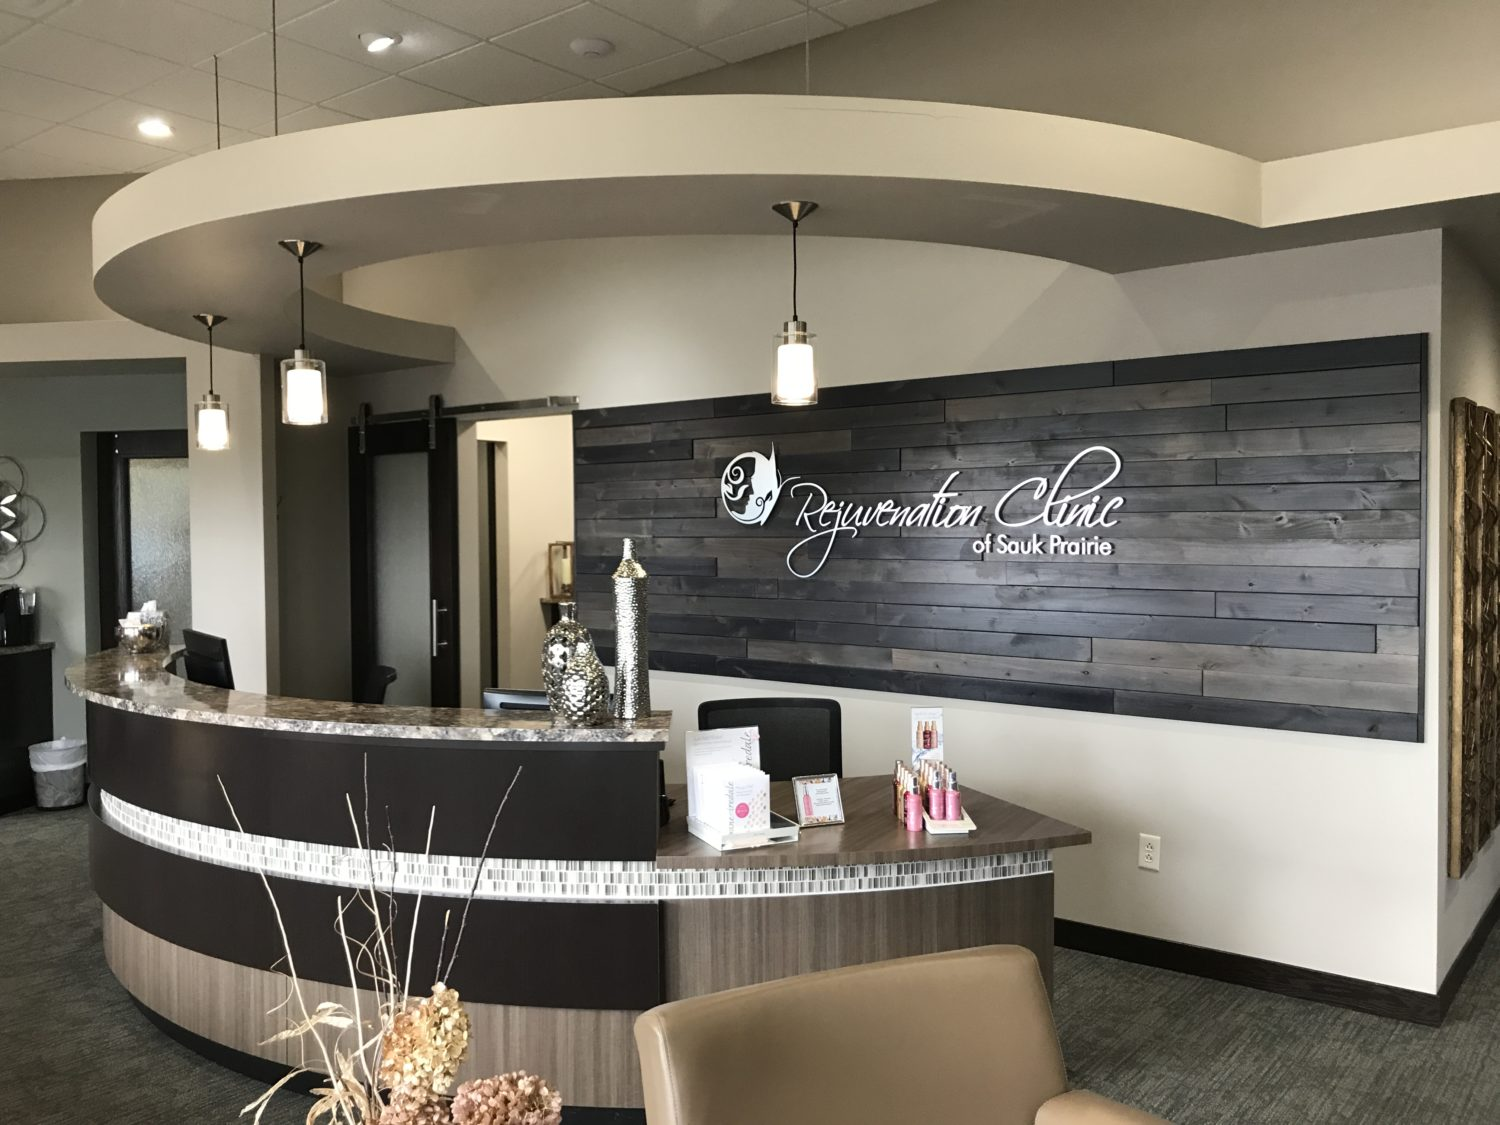 Rejuvenation Clinic of Sauk Prairie